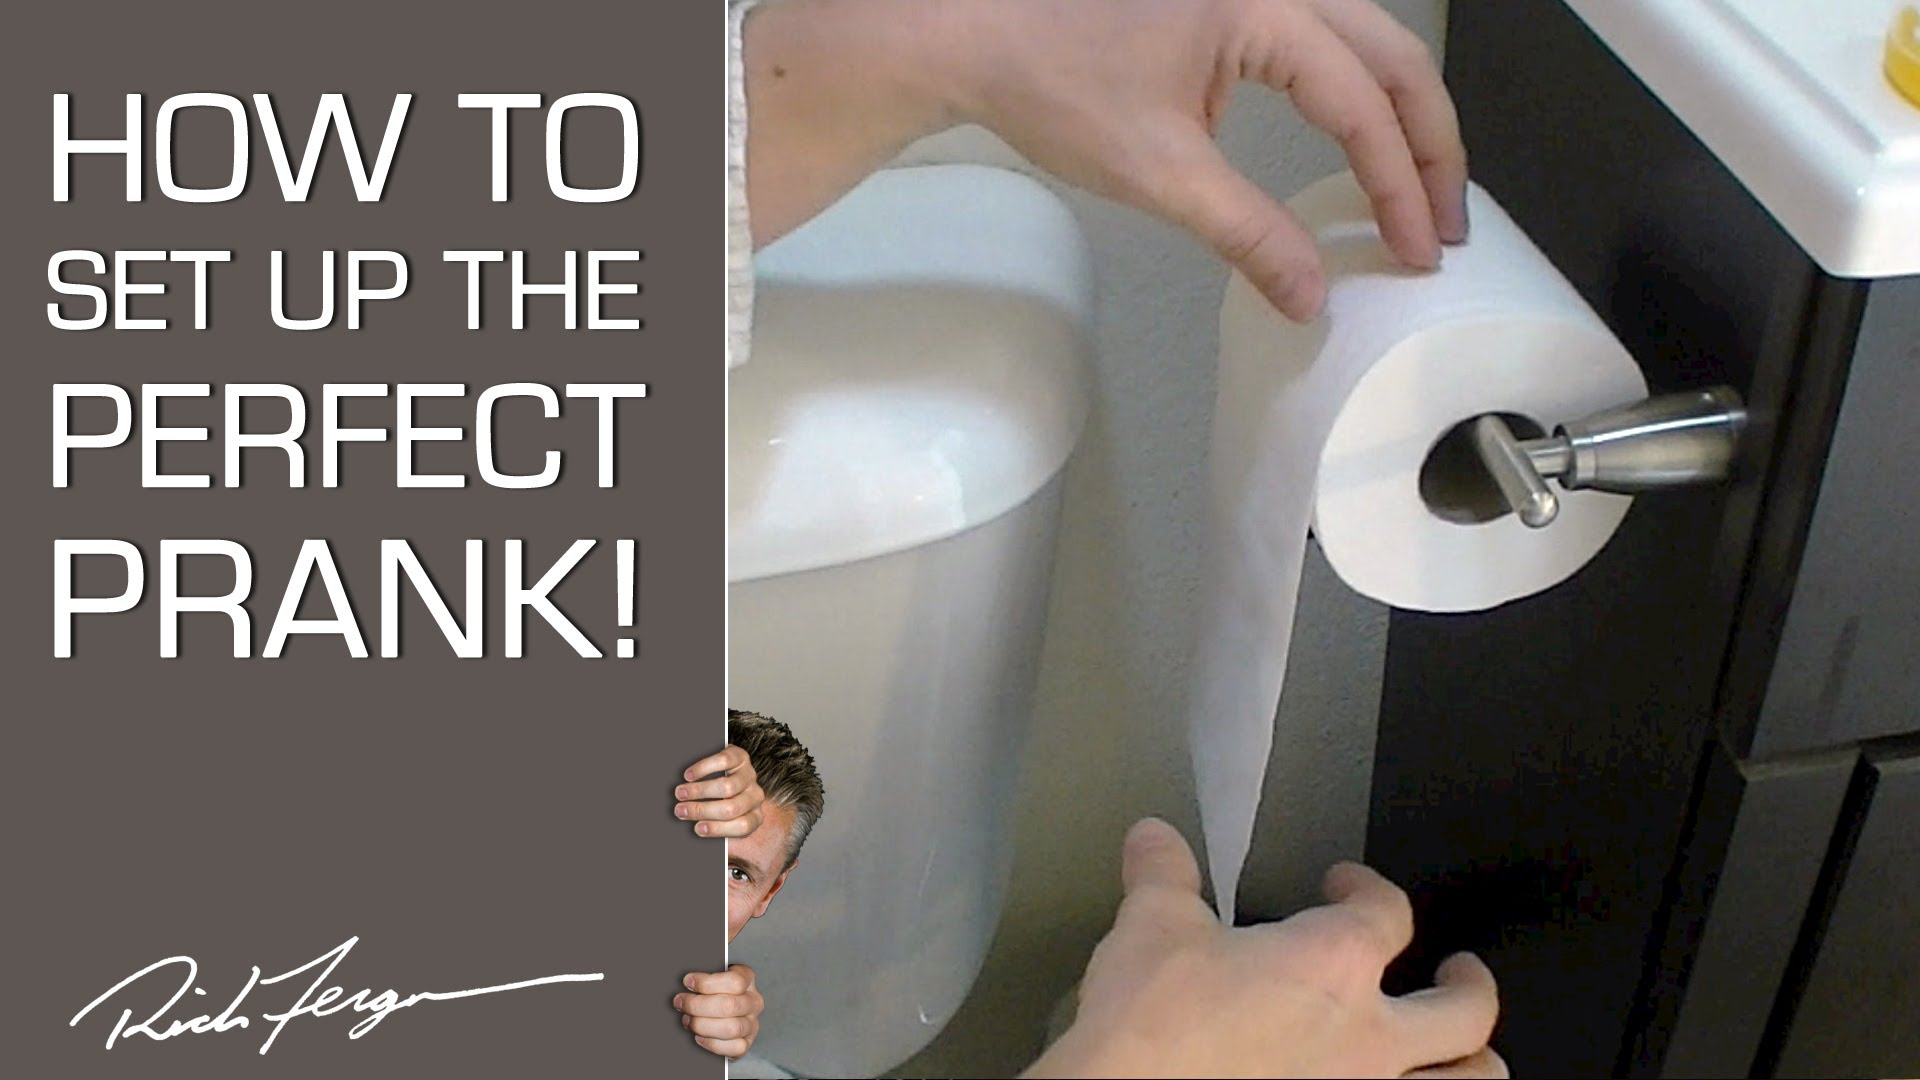 Drawn spider toilet paper To How THE PRANK! PERFECT